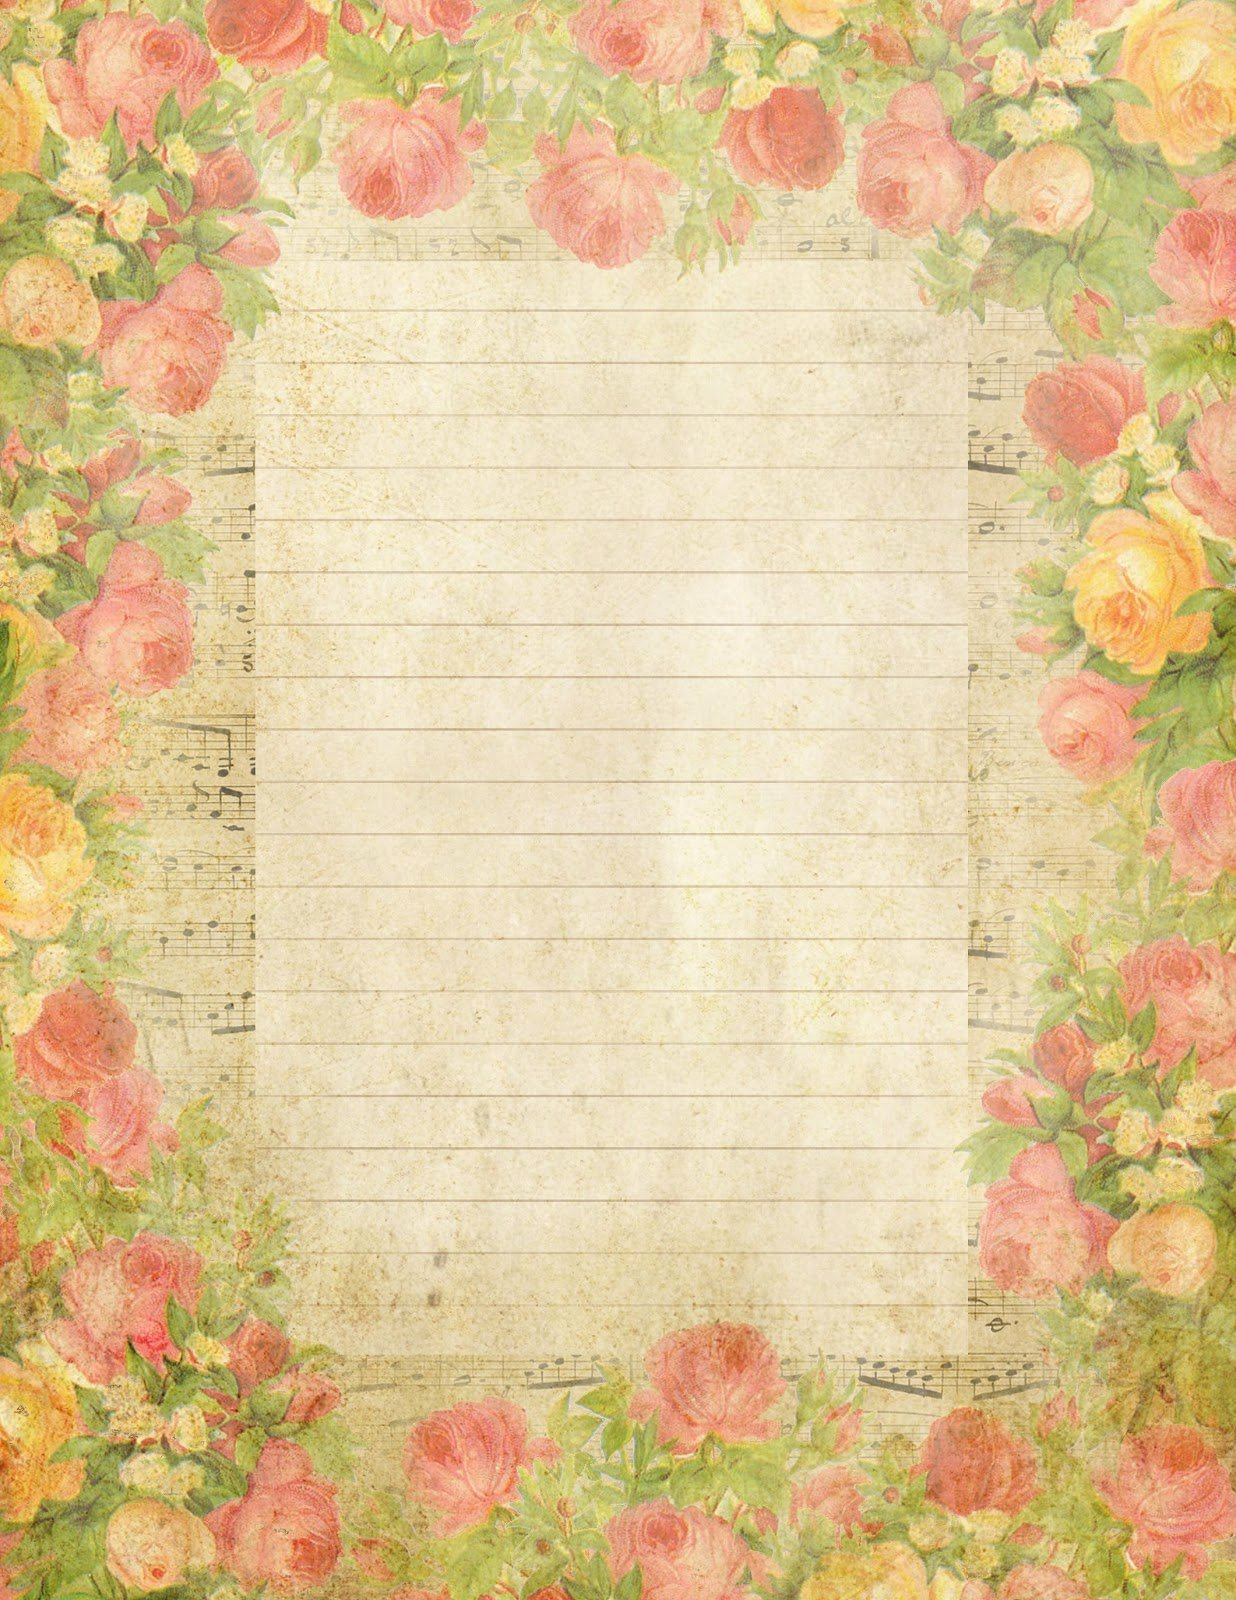 Printable Lined Stationery Paper Unique Lilac & Lavender May 2012